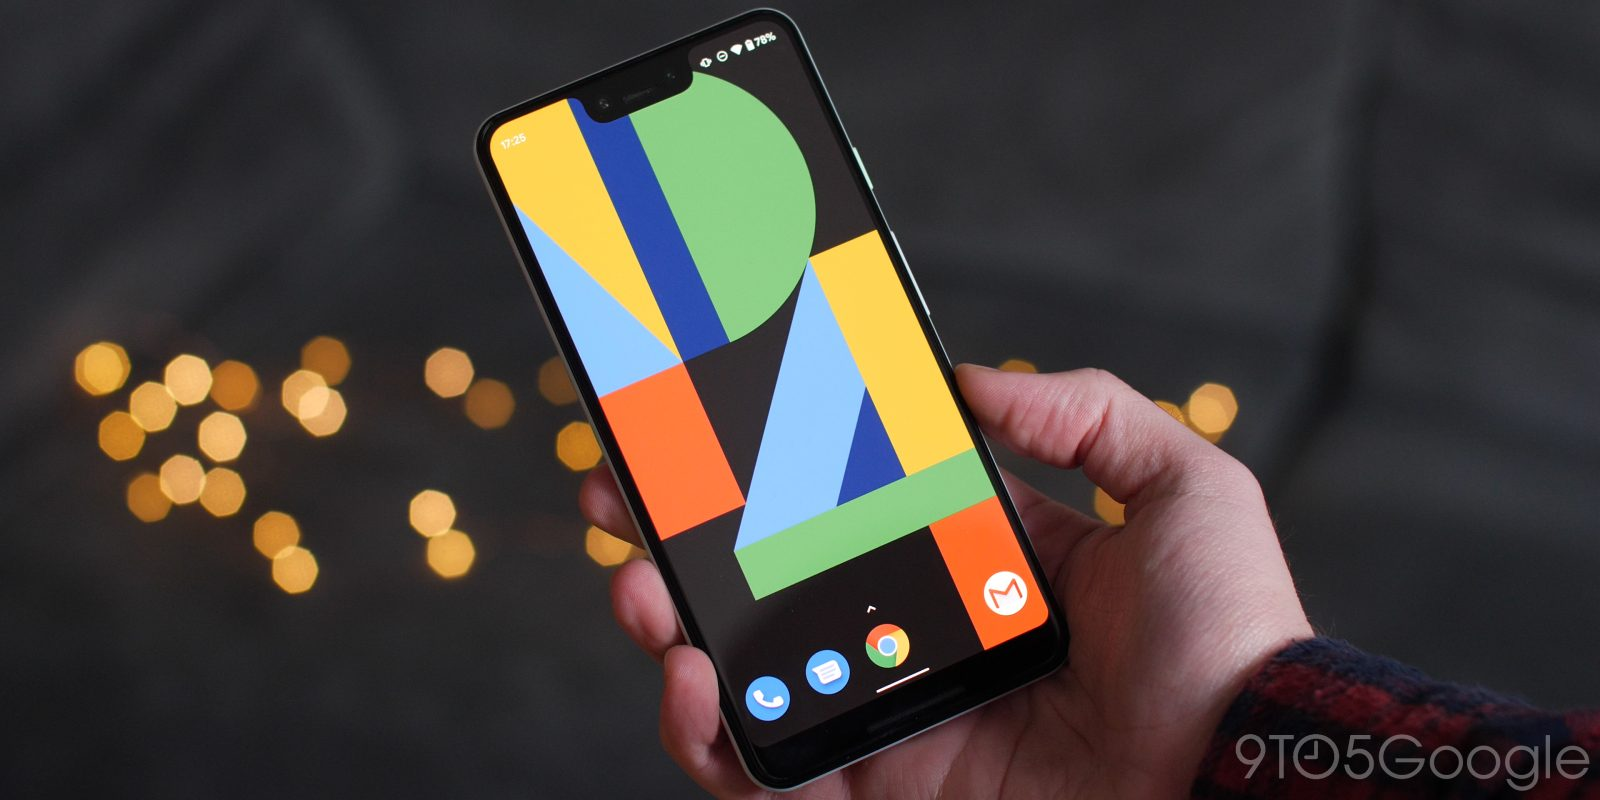 Here are all the Pixel 4 features coming to Pixel 3, 3a [Video]